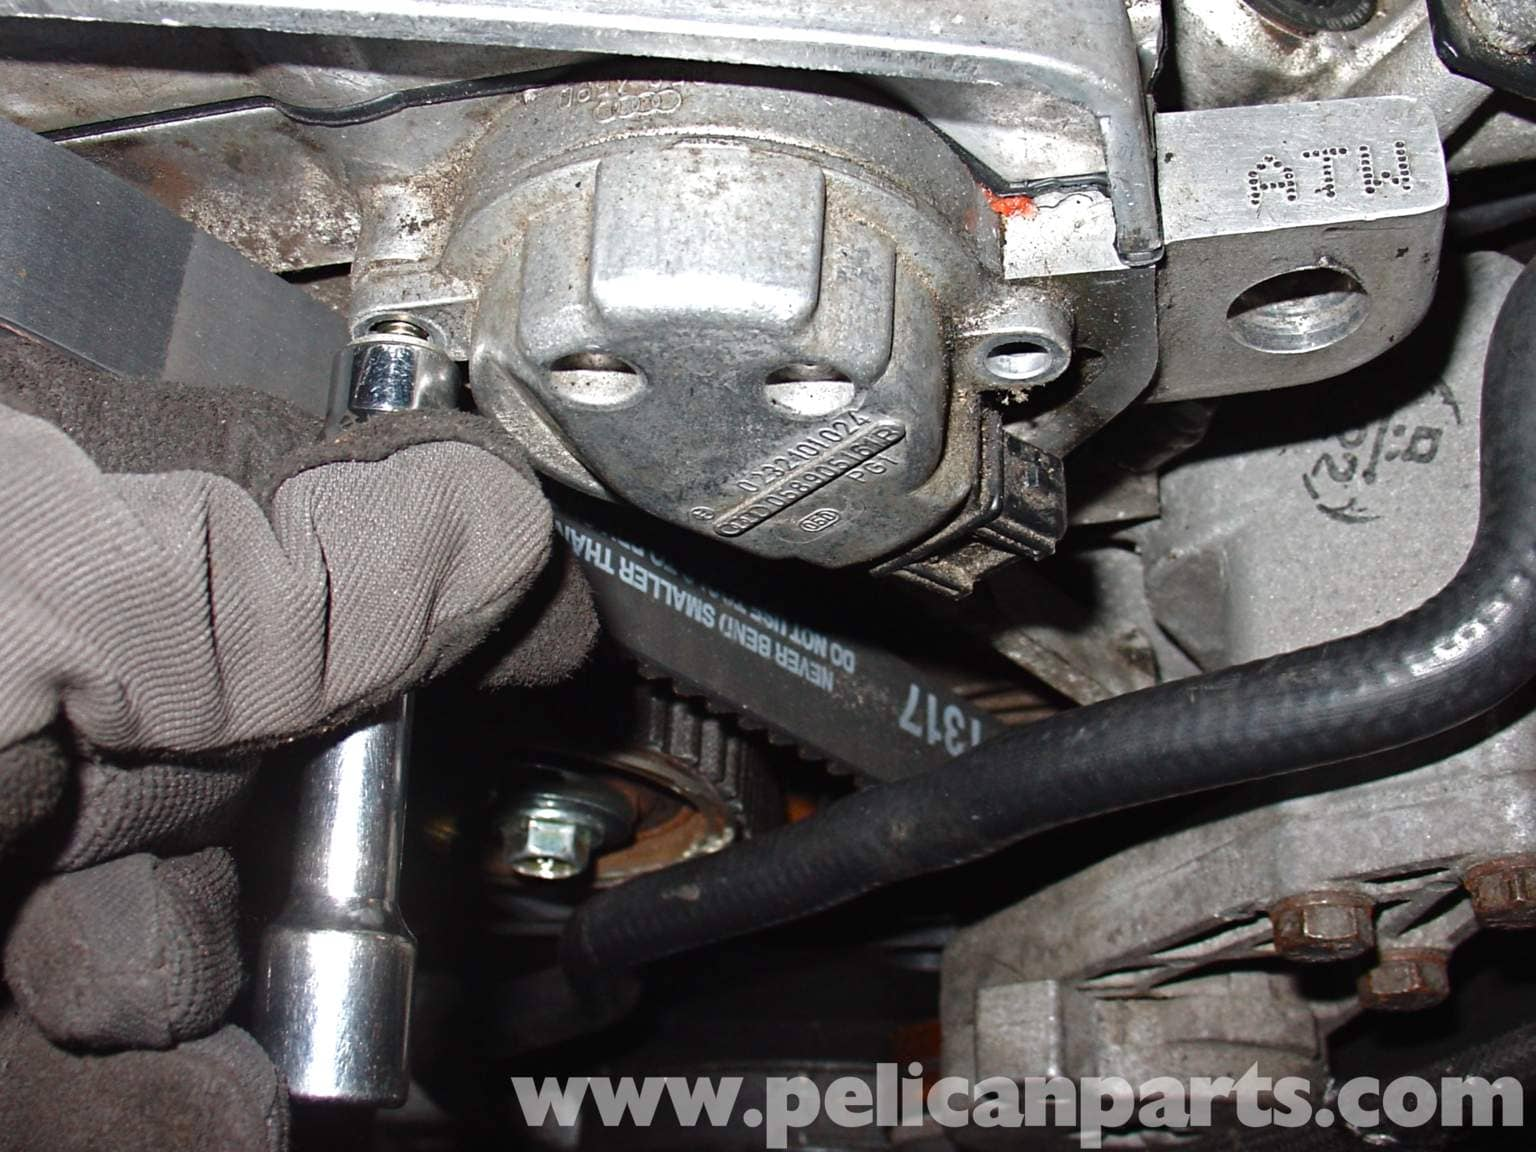 Beltchev07 in addition 8ftc5 Toyota Camry Ce Timing Belt Marks 2001 Camry 4 Cylinder together with Watch furthermore Volvo Penta Md5a Diesel Marine Engine Workshop Manual as well 2009 Honda CR250 1270186. on 2001 5 3 water pump